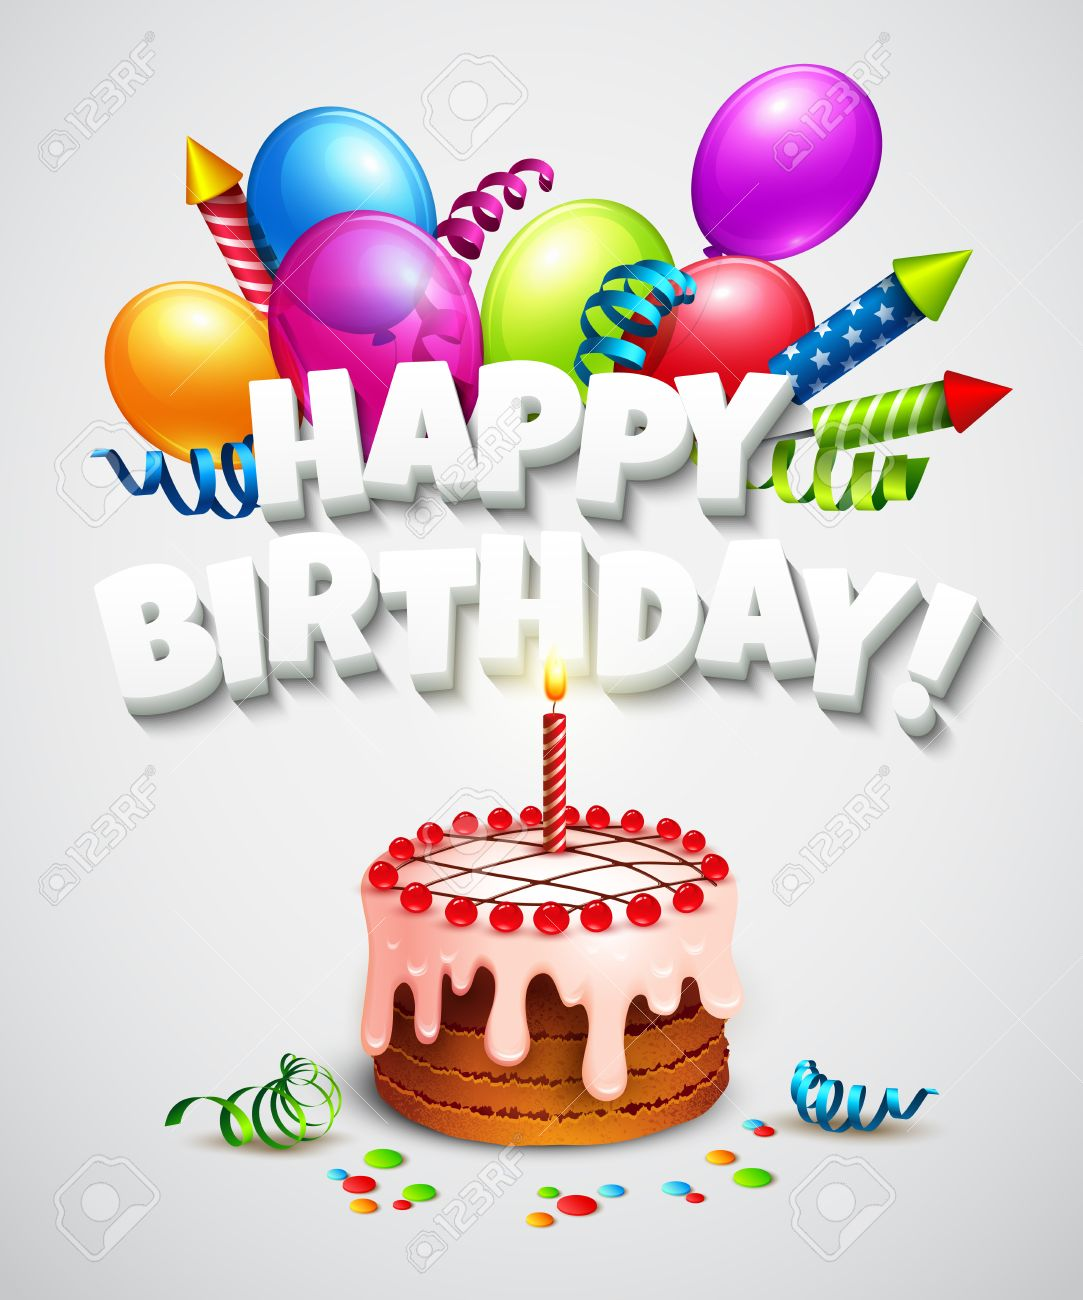 Happy Birthday Greeting Card With Cake And Balloons Vector